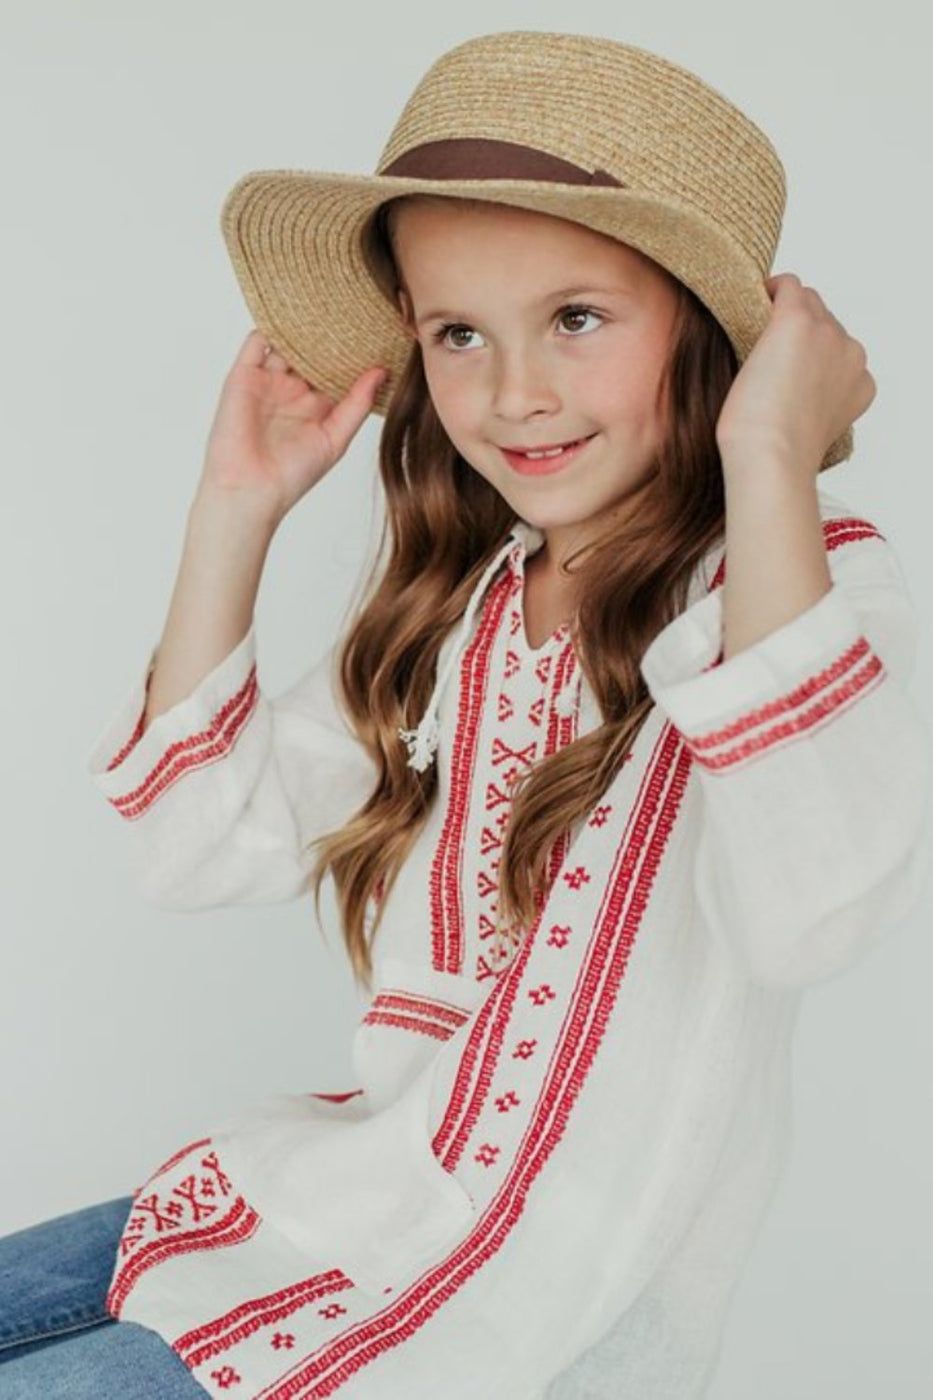 96e3f922b600 instagram: @rooleekids June Embroidered Tunic   ROOLEE White ...